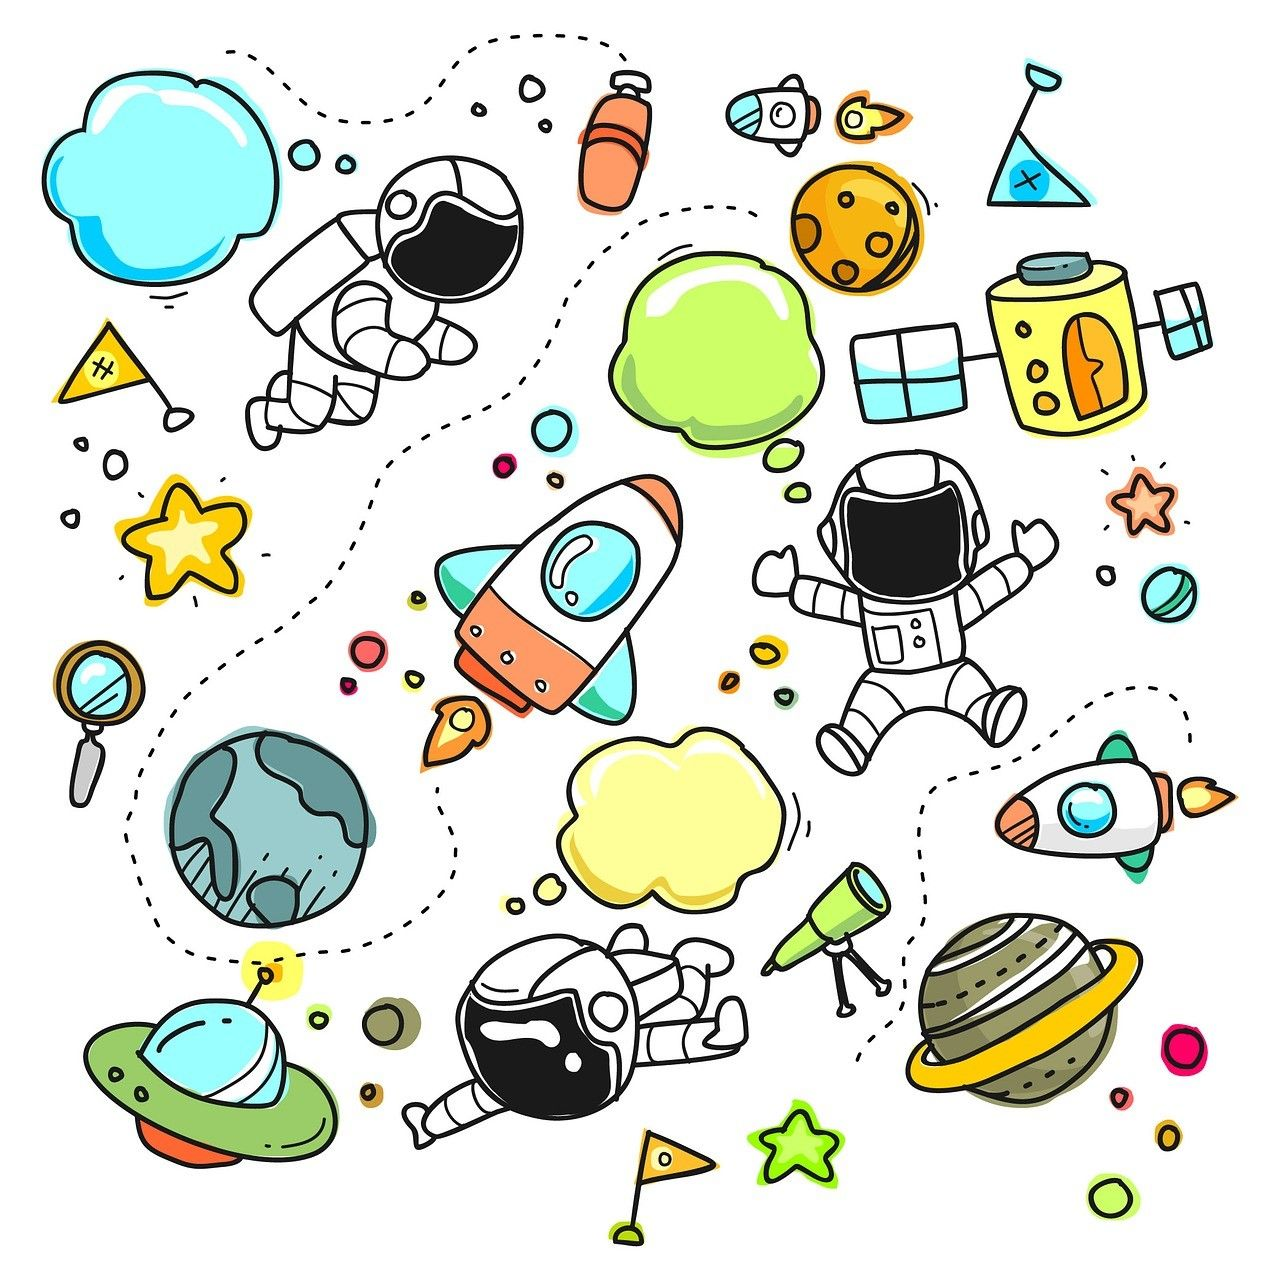 3d Whiteboard Animations Cute Cartoon Pictures Cute Sketches Space Doodles